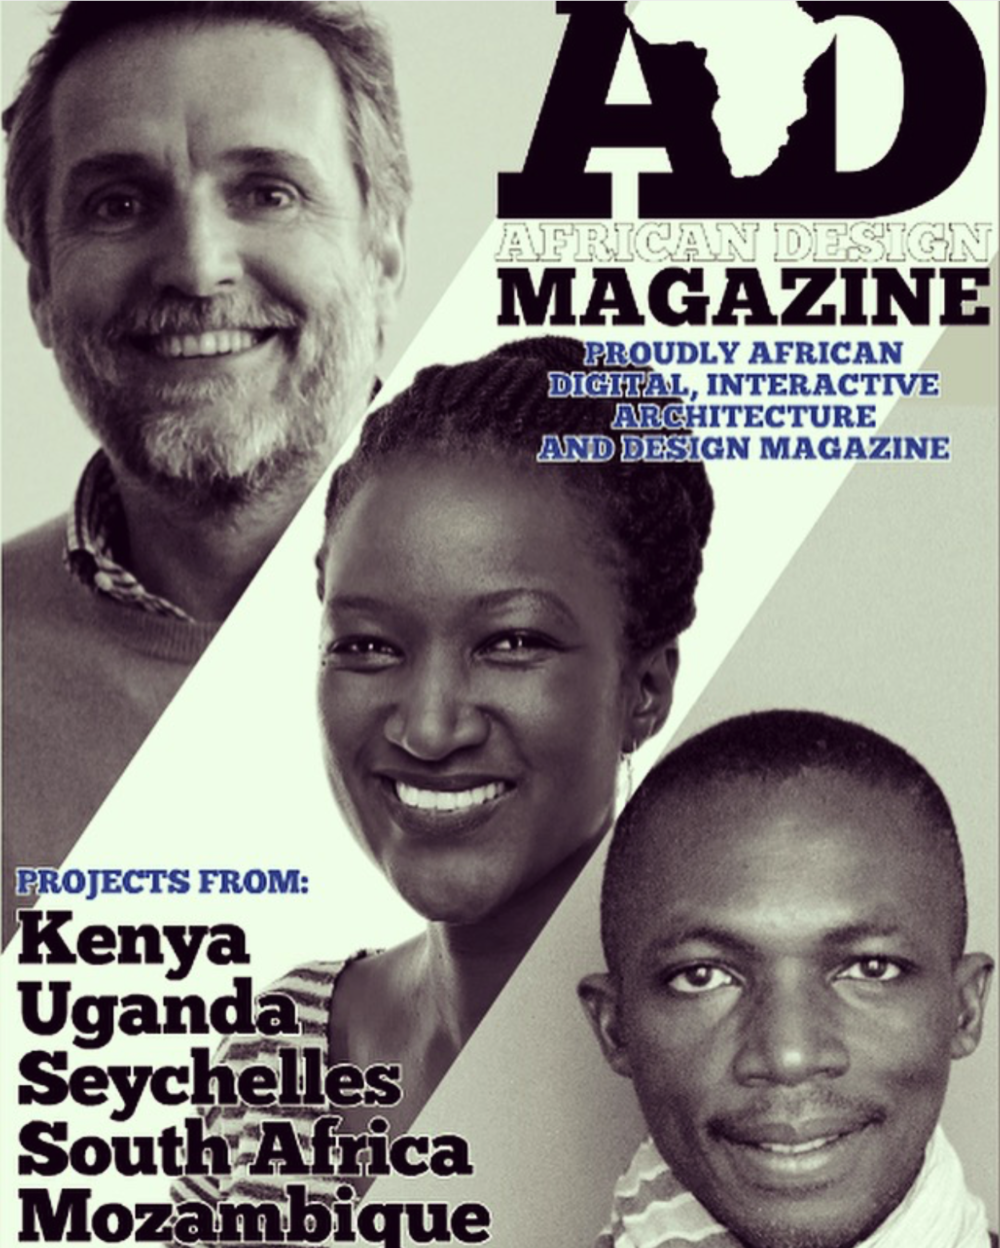 Urko Sanches,  Doreen Adengo , and Issa Diabate on the cover of the African Design Magazine.